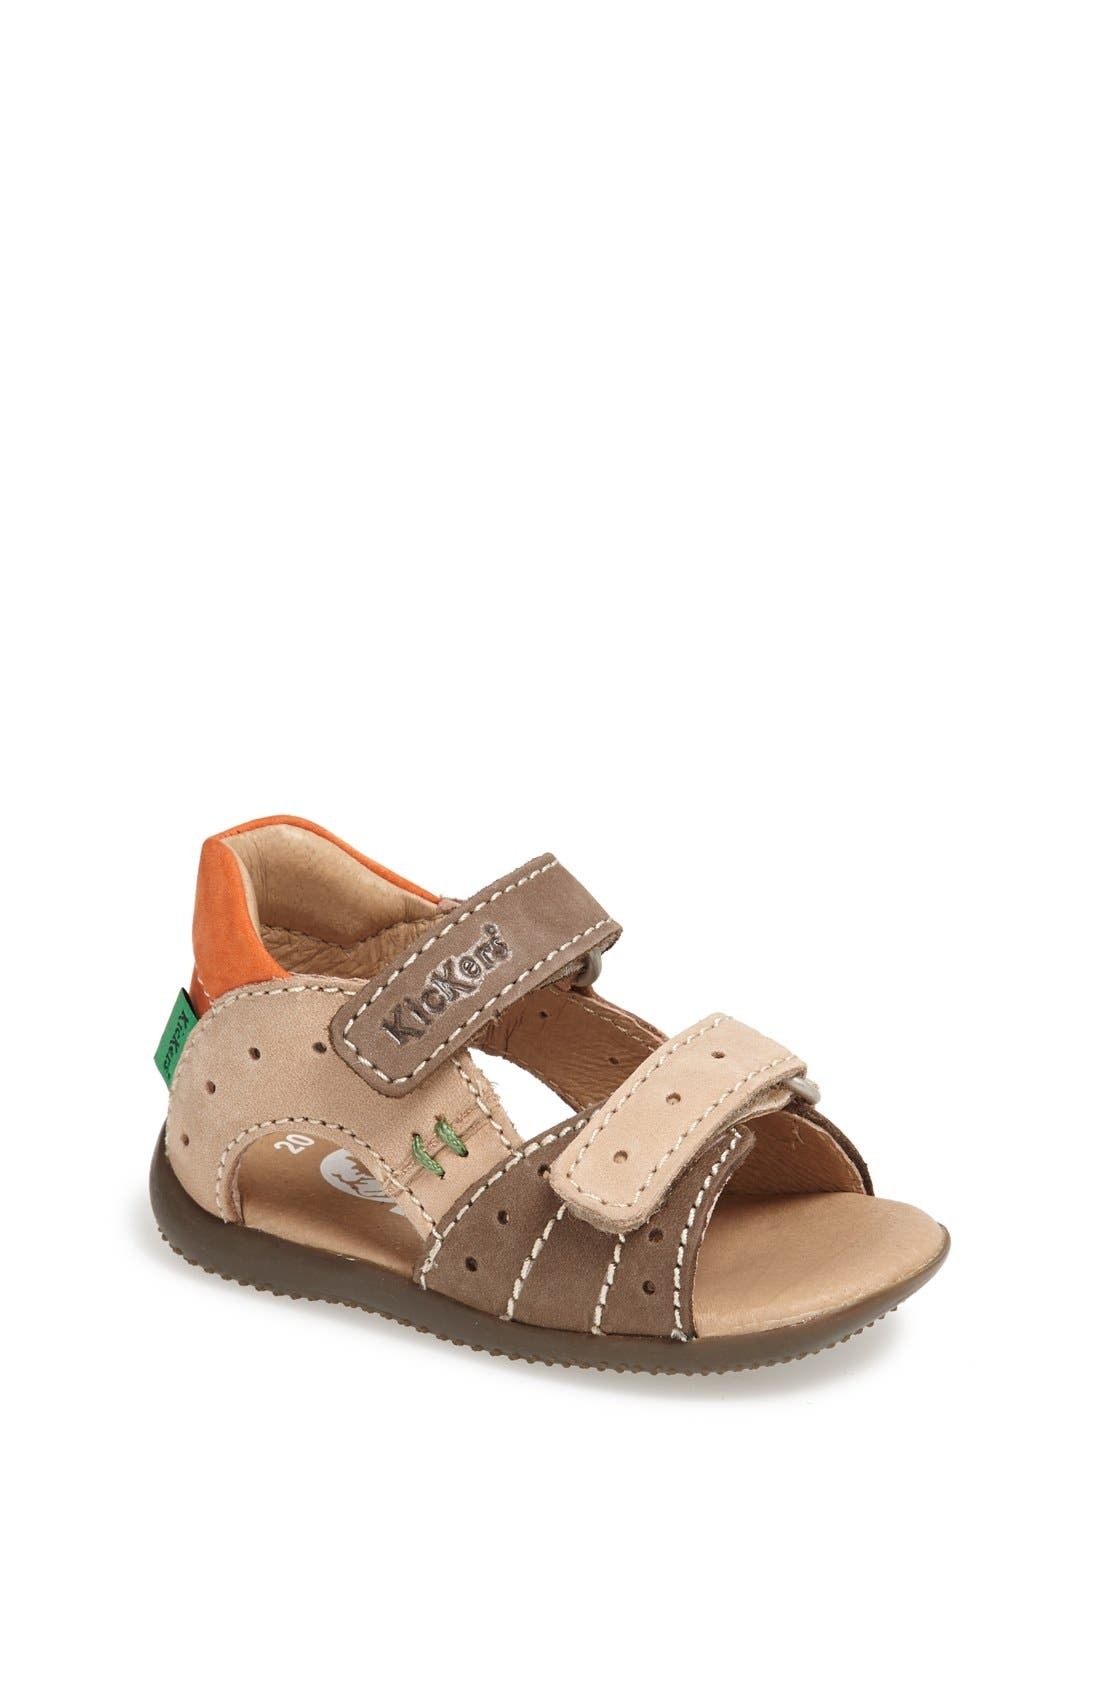 Main Image - Kickers 'Boping 2' Sandal (Baby, Walker & Toddler)